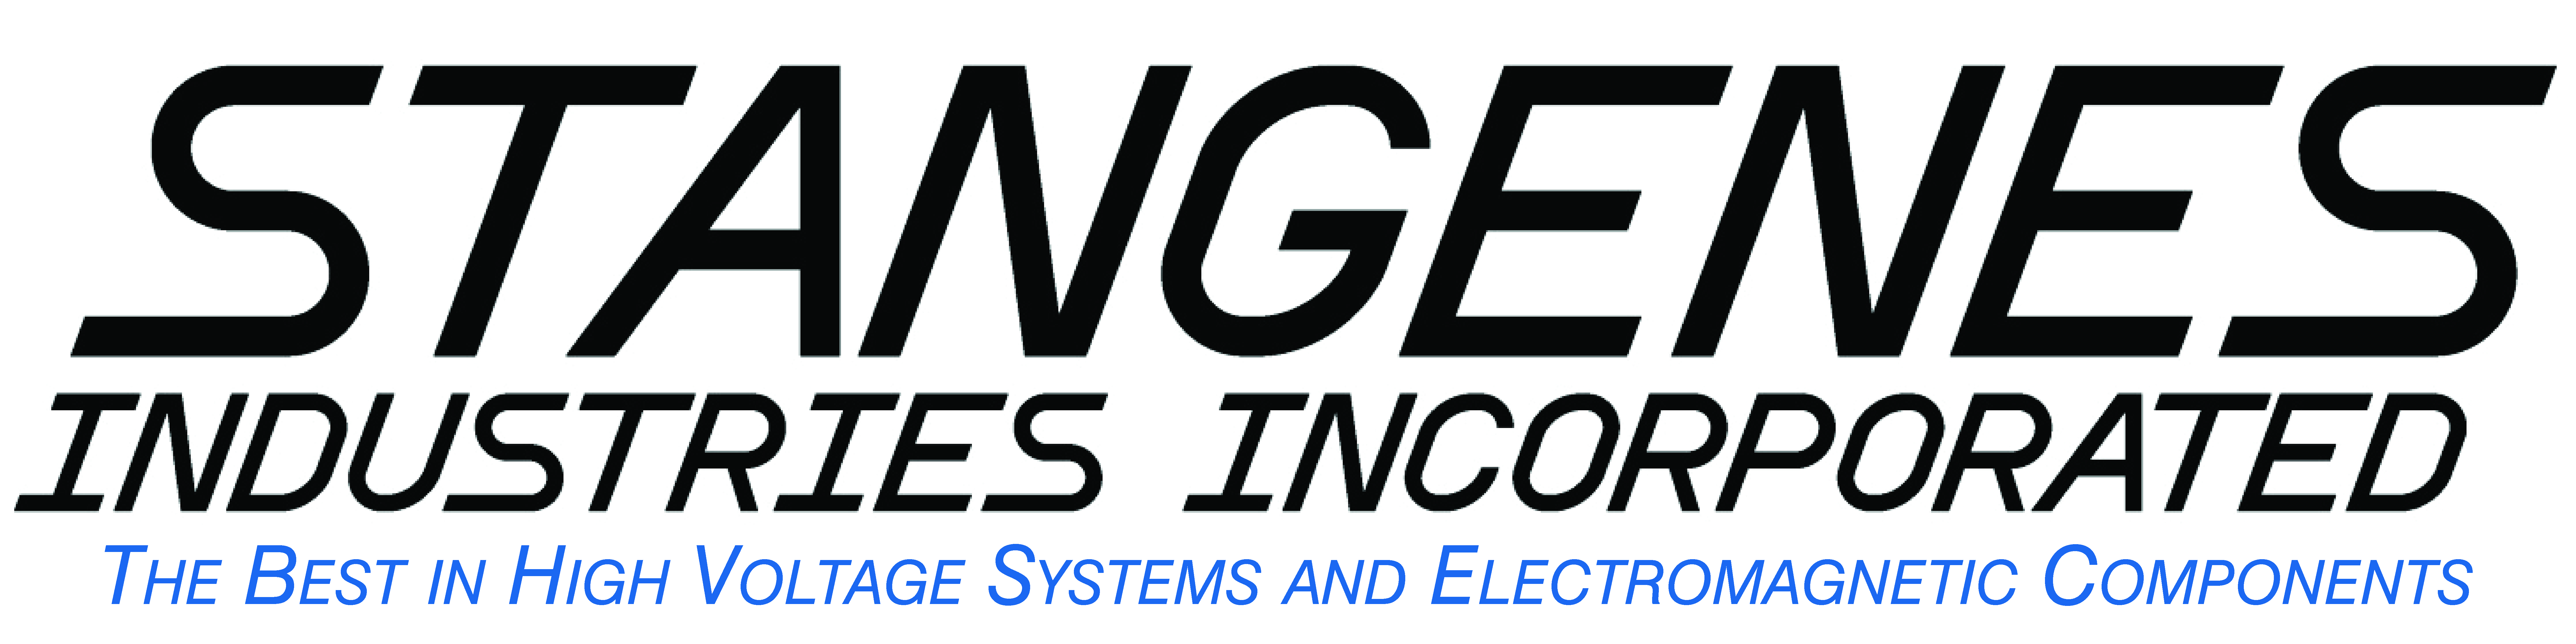 Stangenes Industries, Inc.